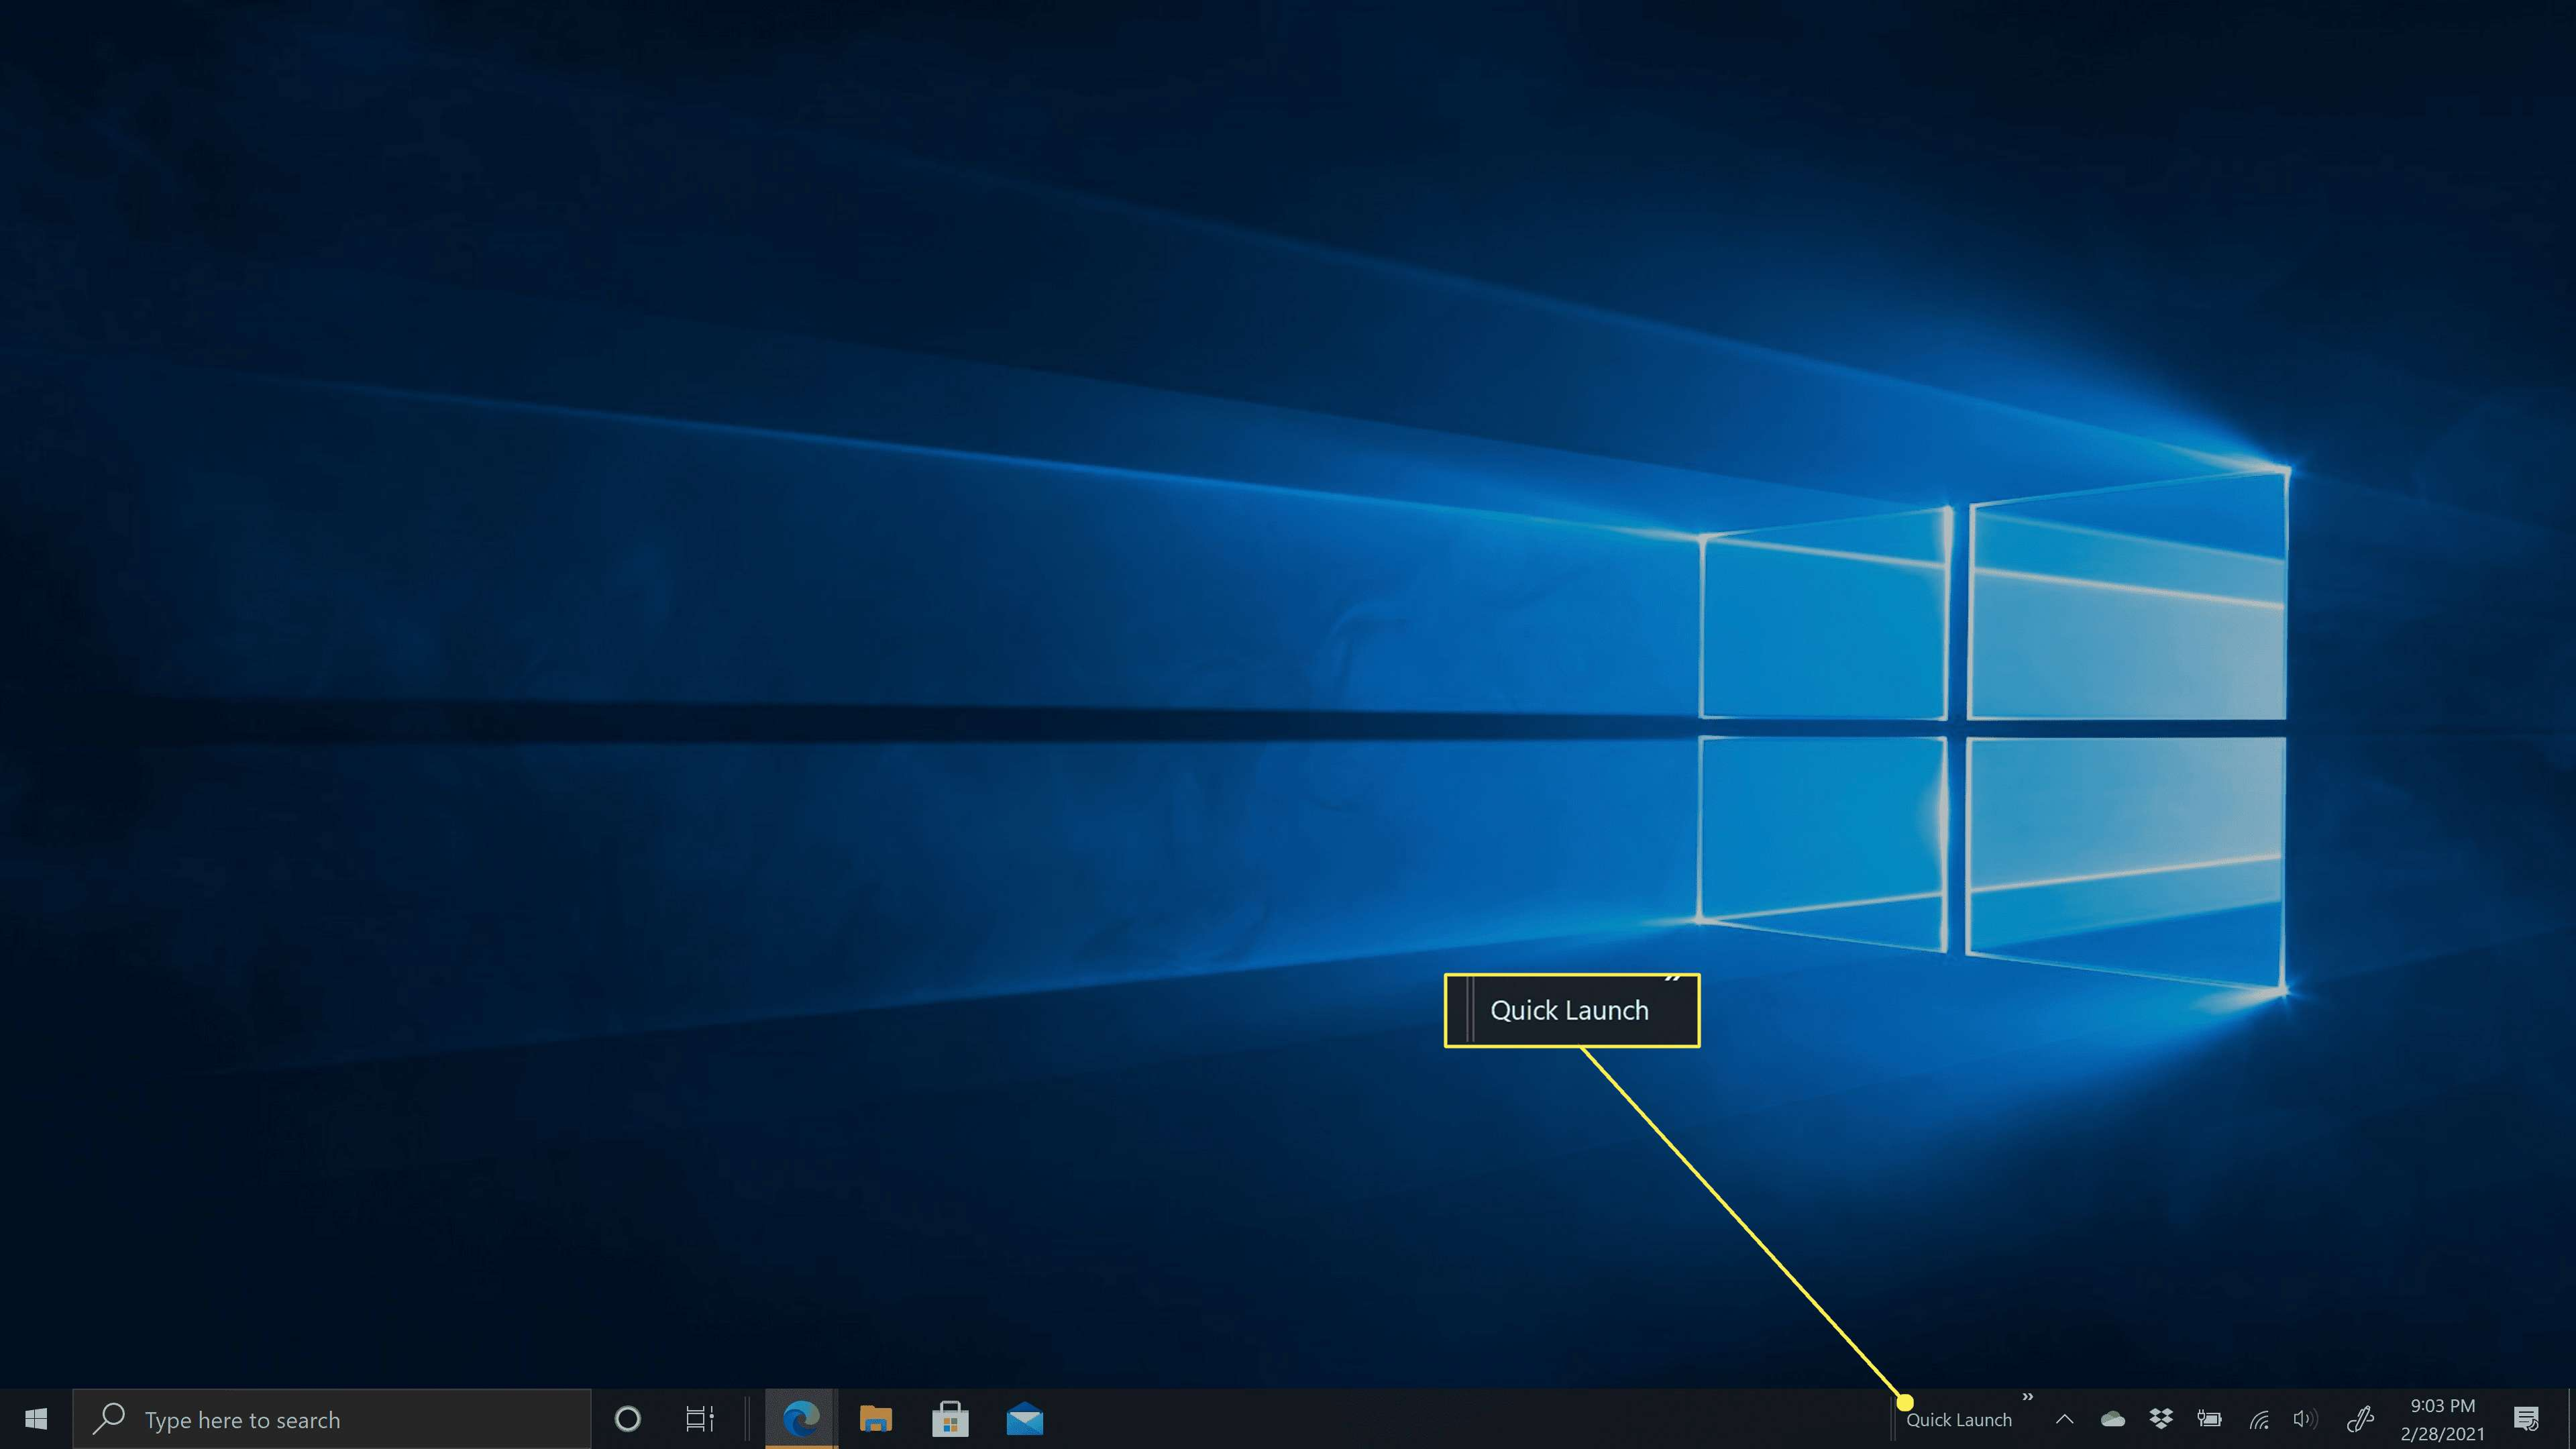 The Quick Launch toolbar in Windows 10 on the right side